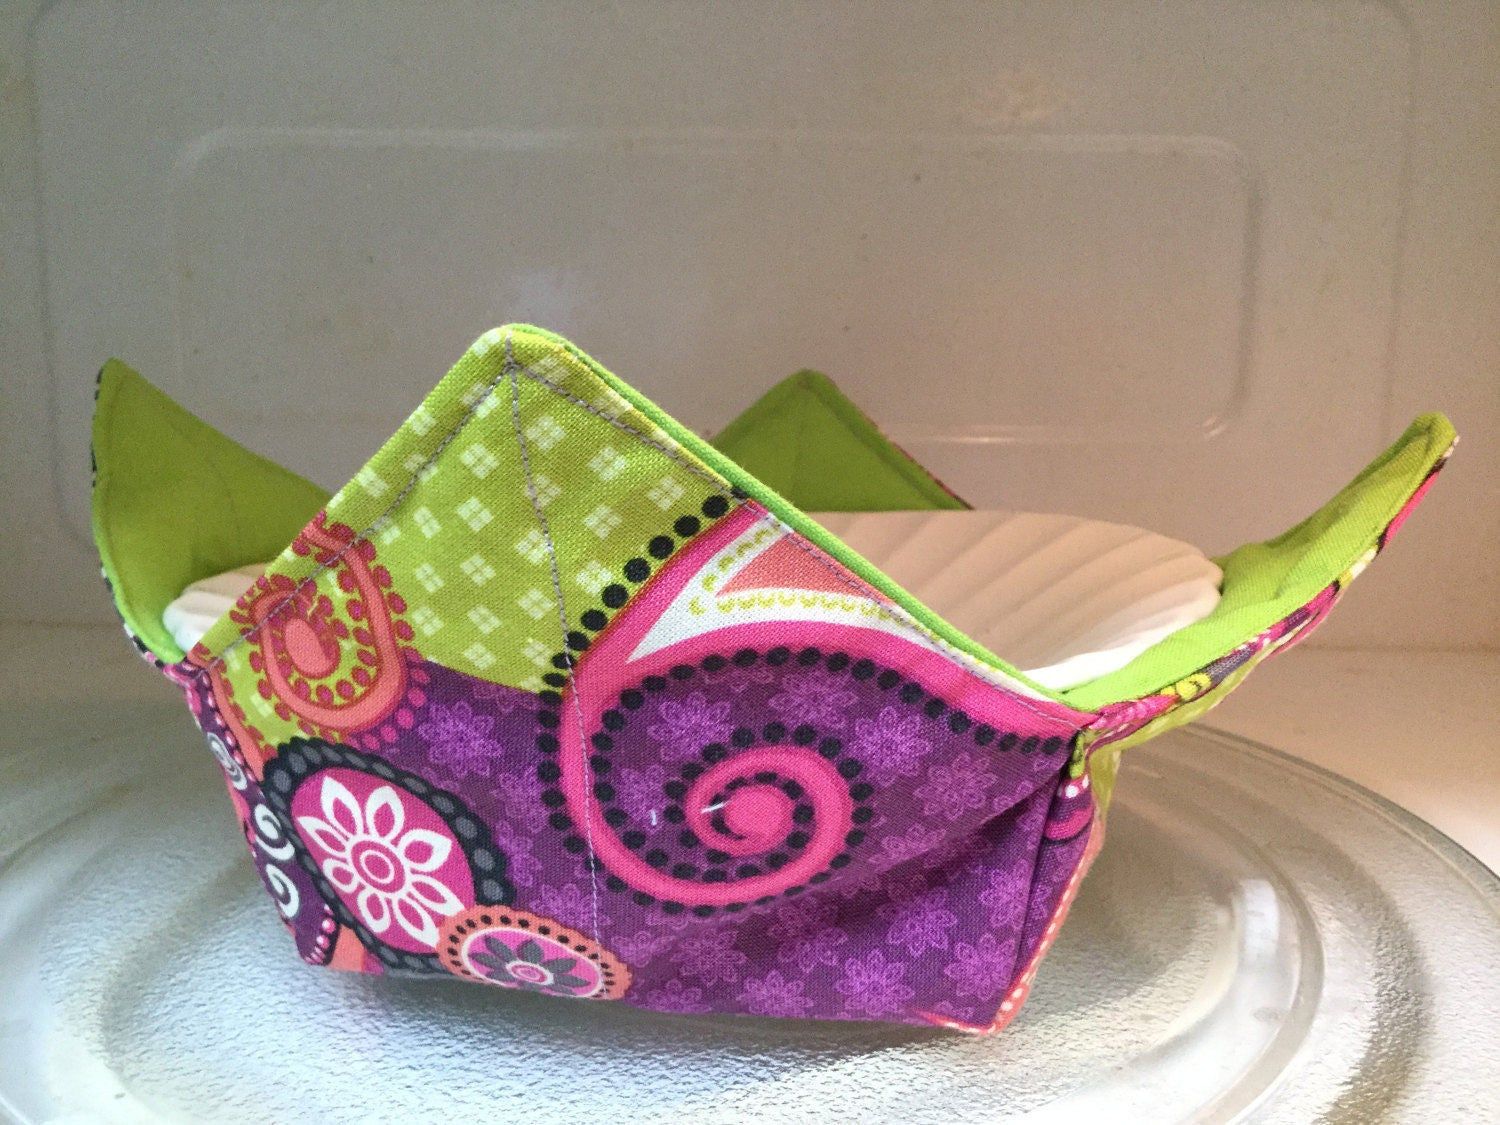 Sew a microwave safe bowl cozy & free printable gift tags the.